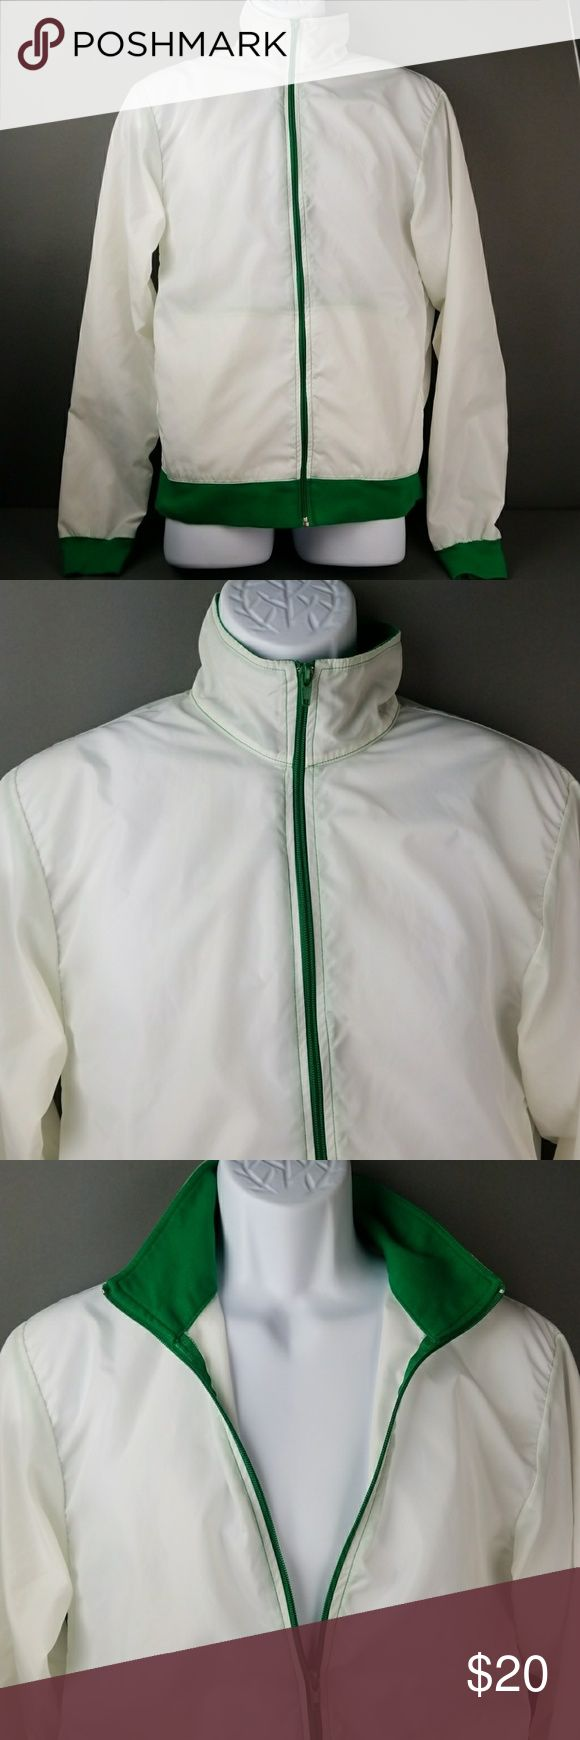 American Apparel Mens windbreaker jacket In good condition looks very nice in person its white with green.  Size M American Apparel Jackets & Coats Windbreakers